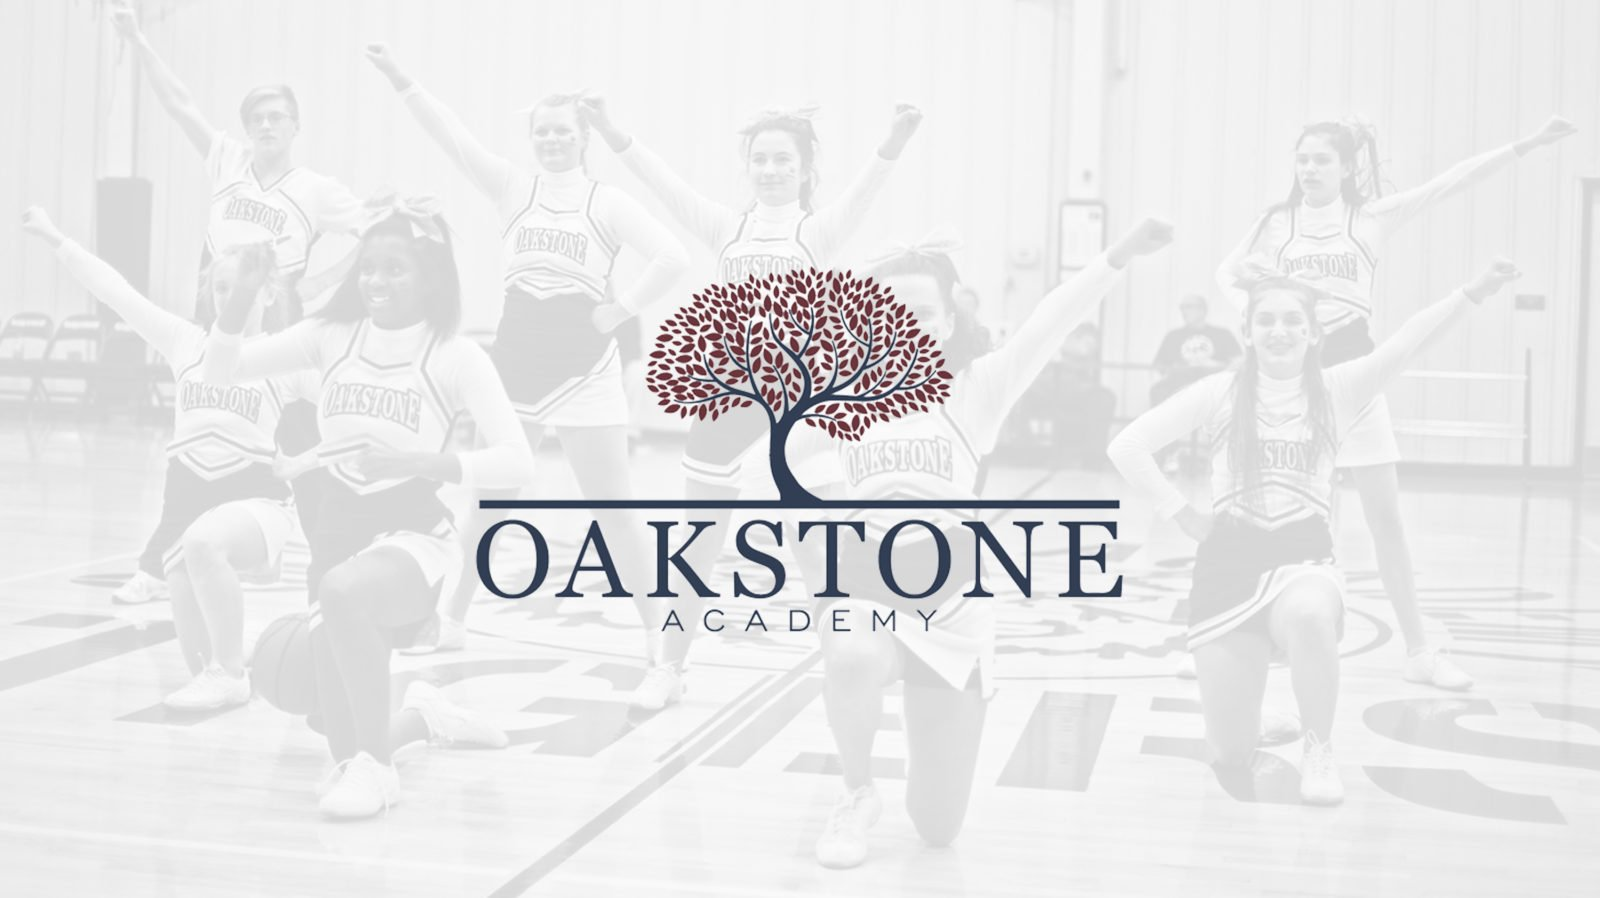 Oakstone Academy: Utilizing a Daily Check-In System to Increase Attendance